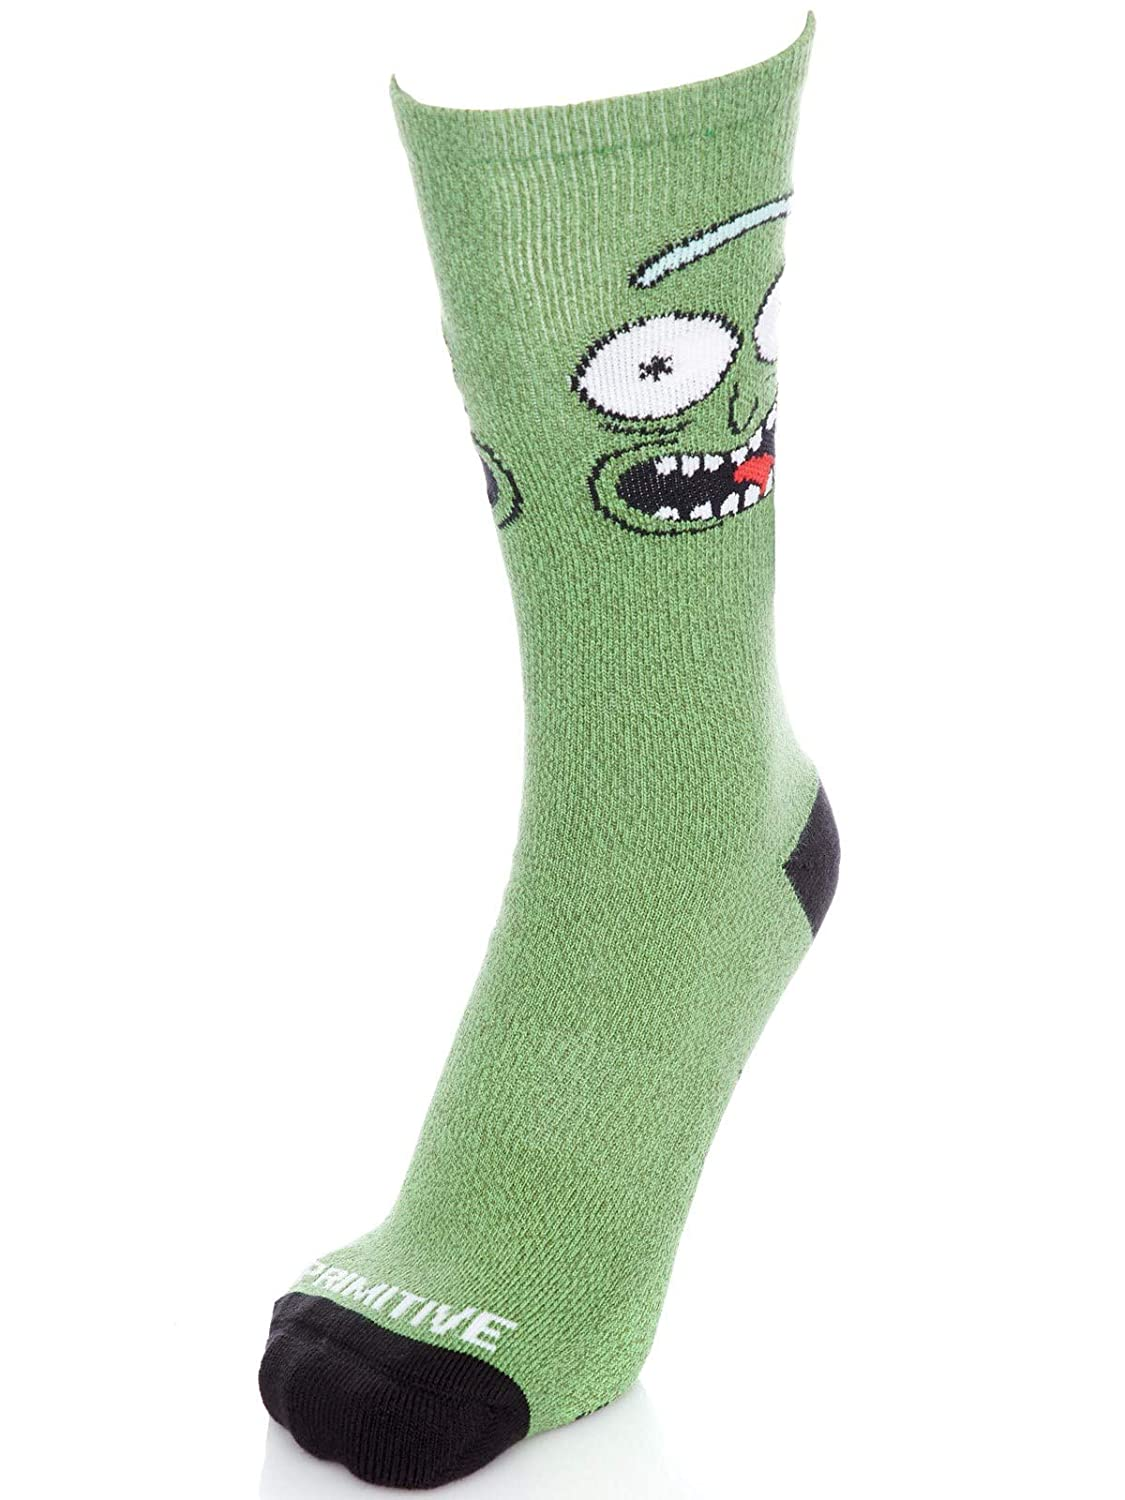 Primitive Calcetines Rick and Morty Collaboration Pickle Rick Verde: Amazon.es: Ropa y accesorios